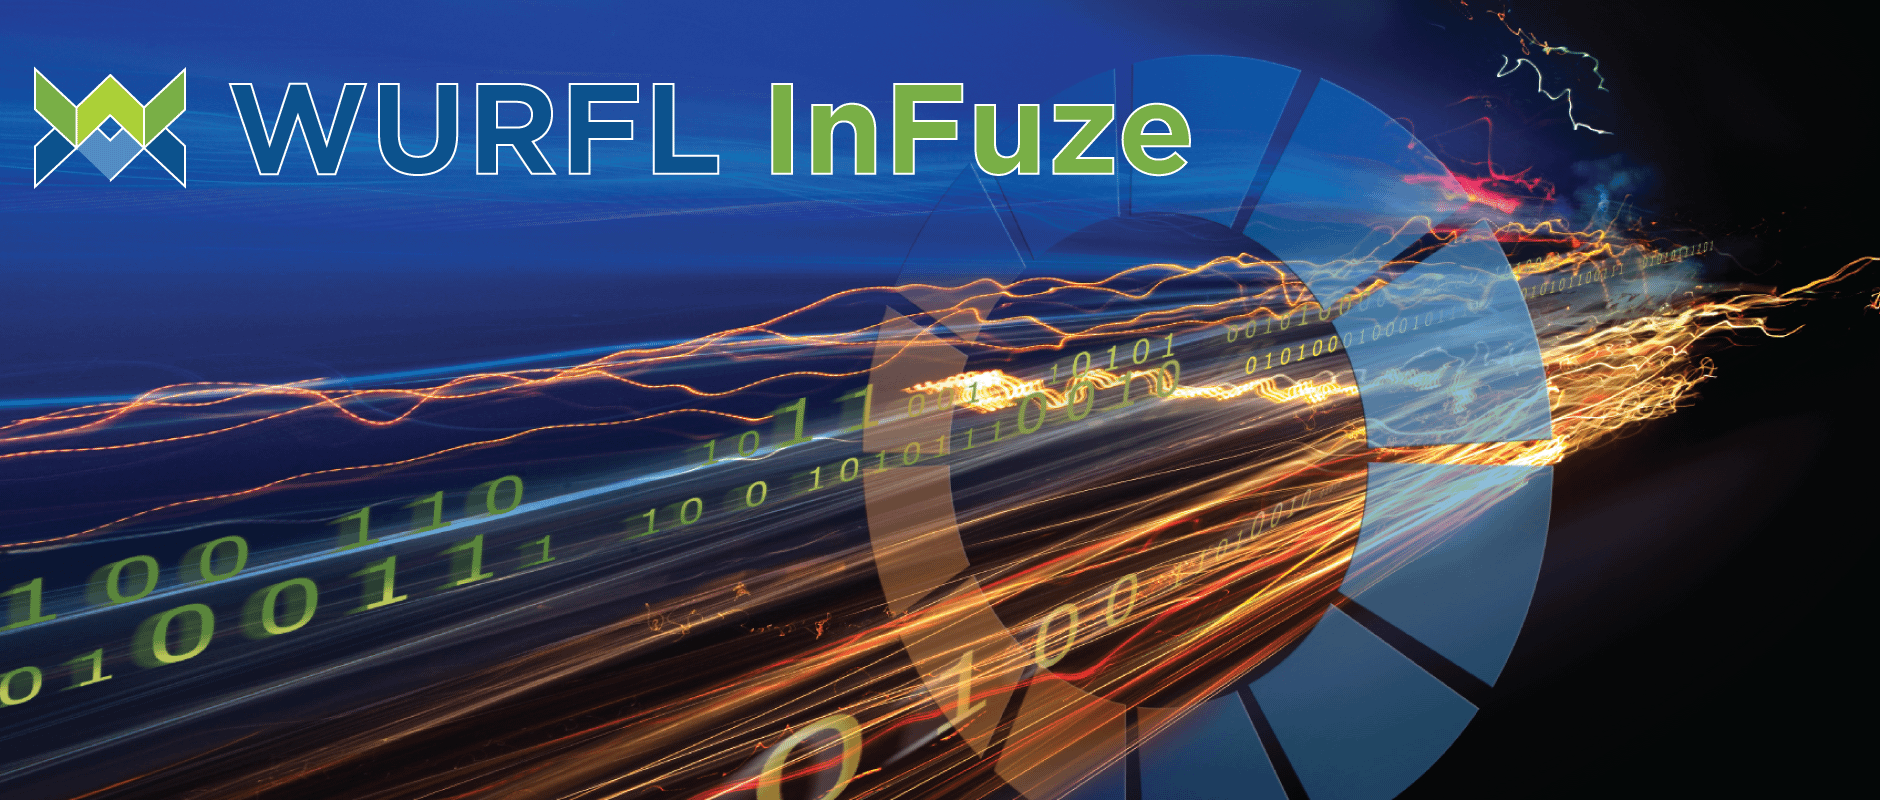 WURFL InFuze Device Detection Java Scala DotNet PHP